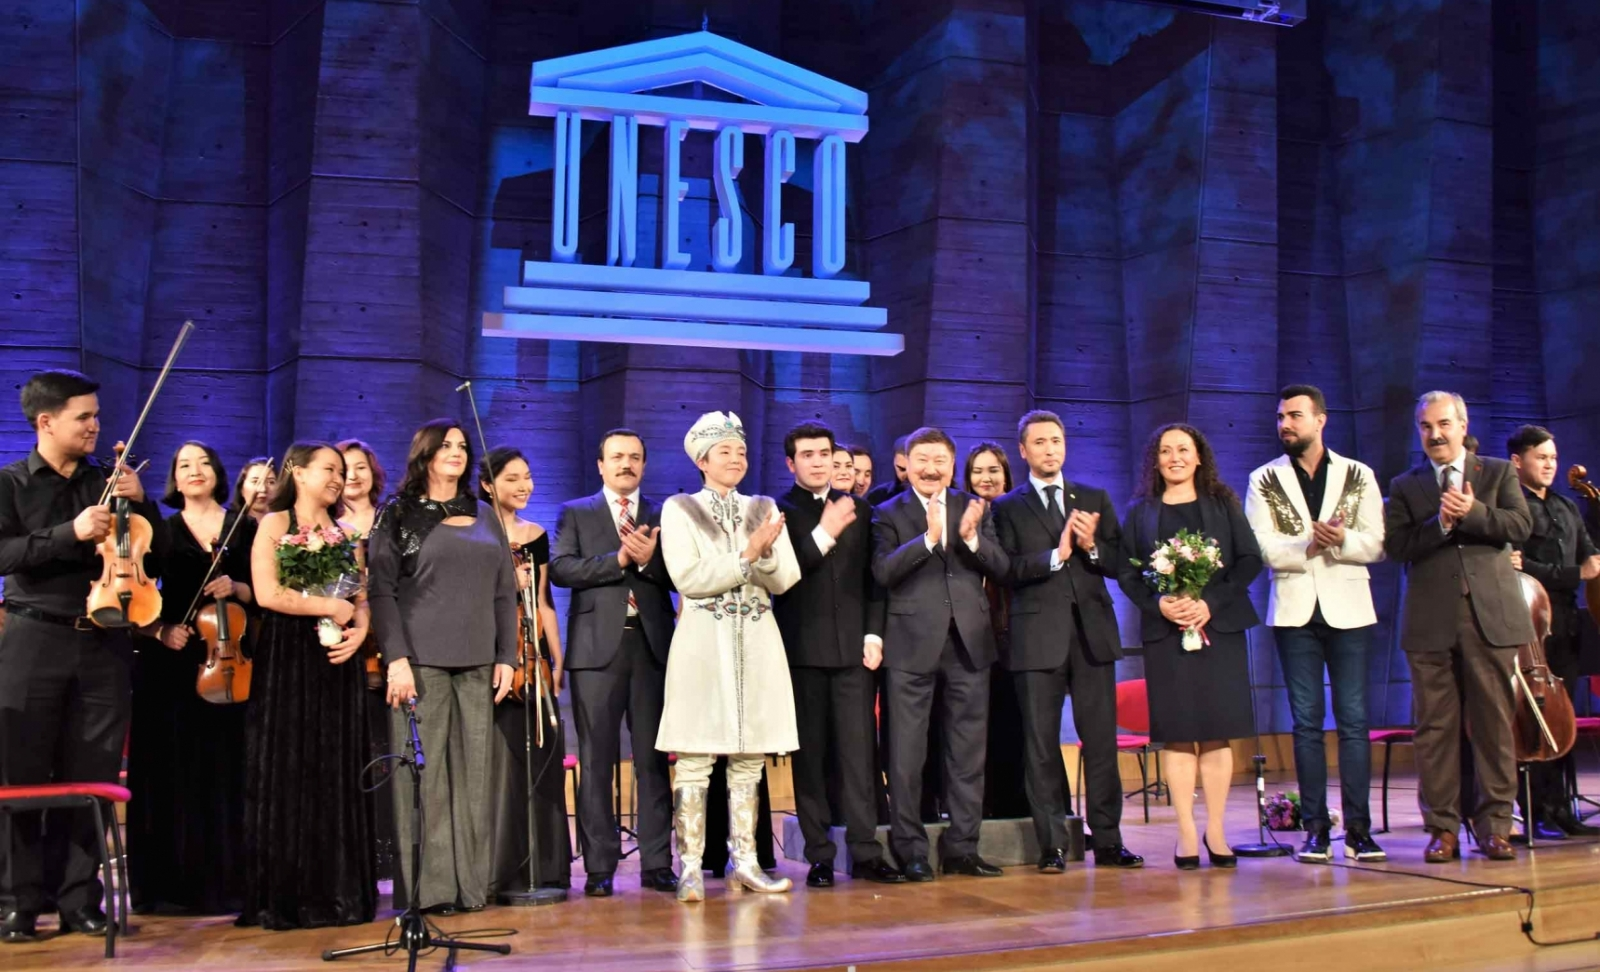 25th anniversary of TURKSOY celebrated in Paris